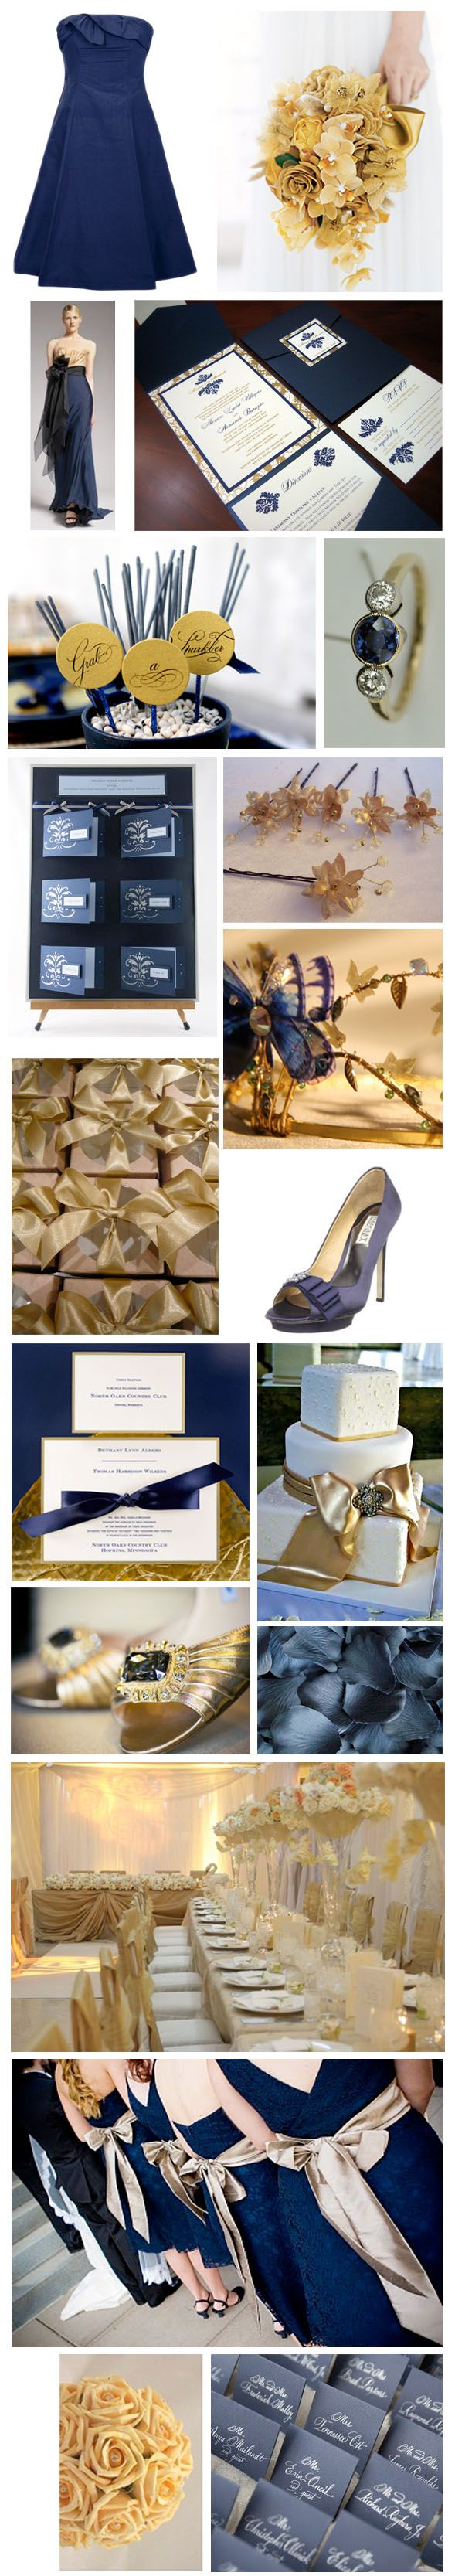 I keep forgetting my wedding reception is at THE BLUE ROOM.. this is helping tie stuff together for my Fall Wedding.